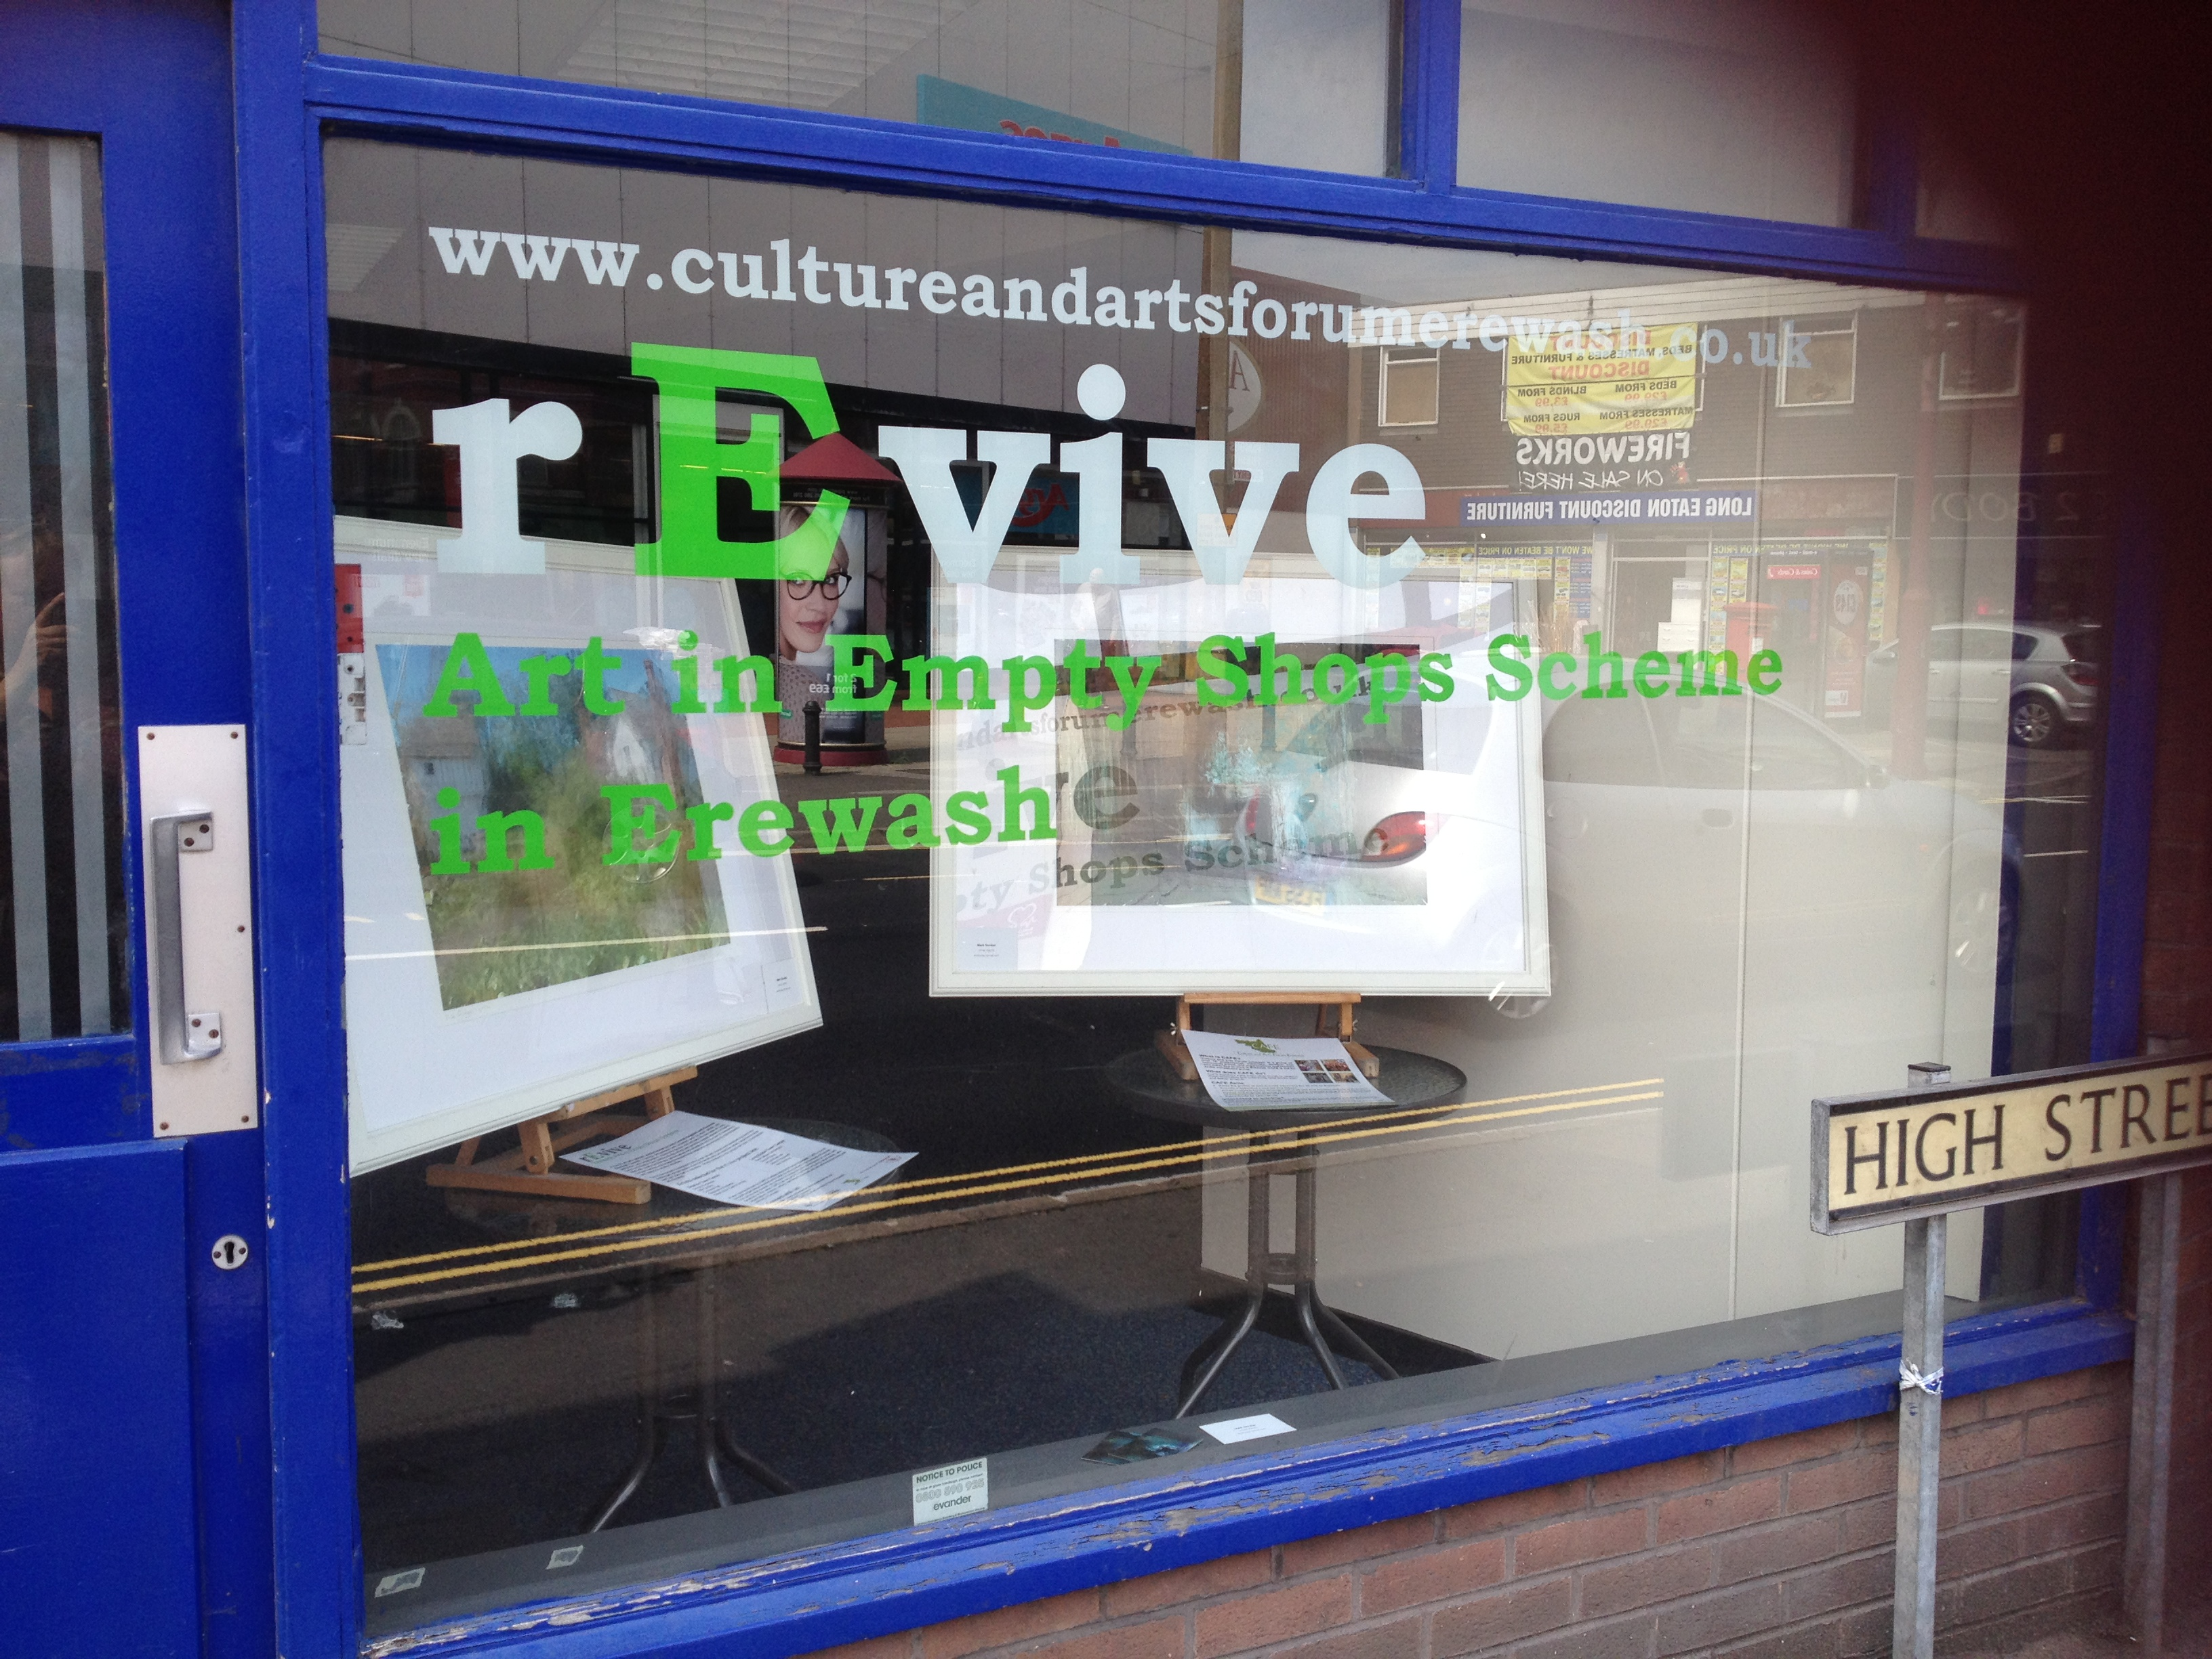 rEvive, art in empty shops